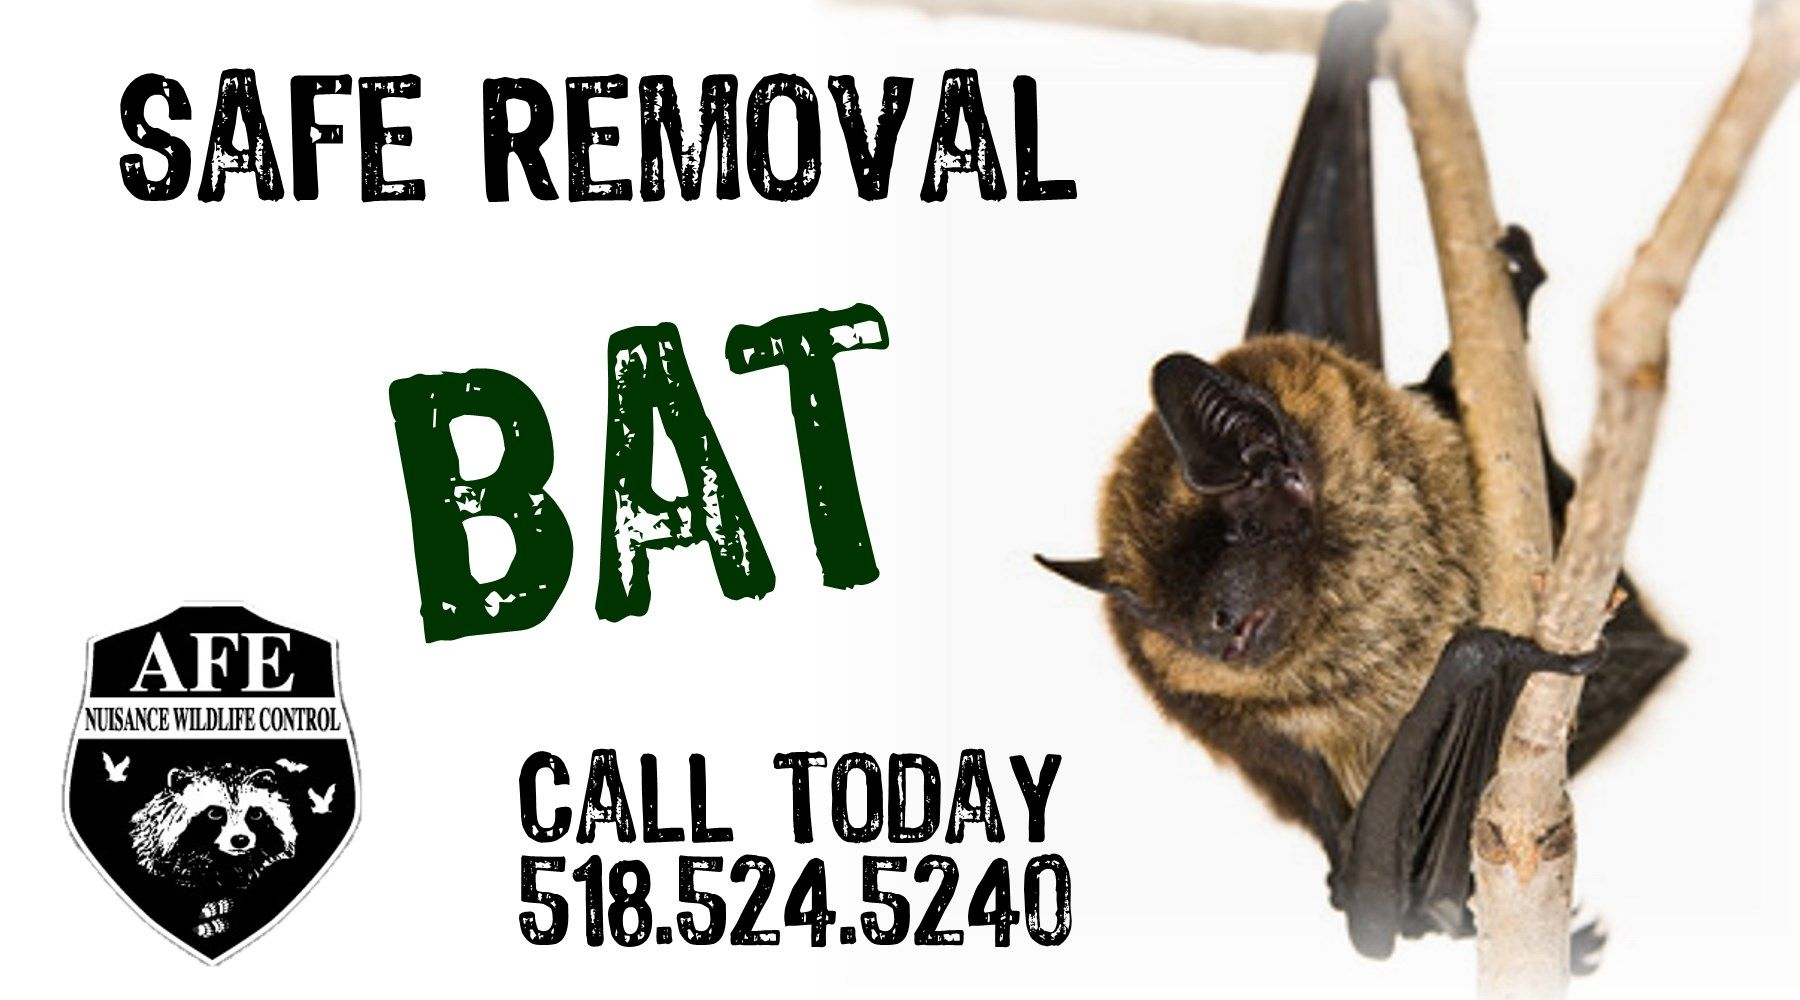 We provide Safe and Reliable wild Bat removal from your